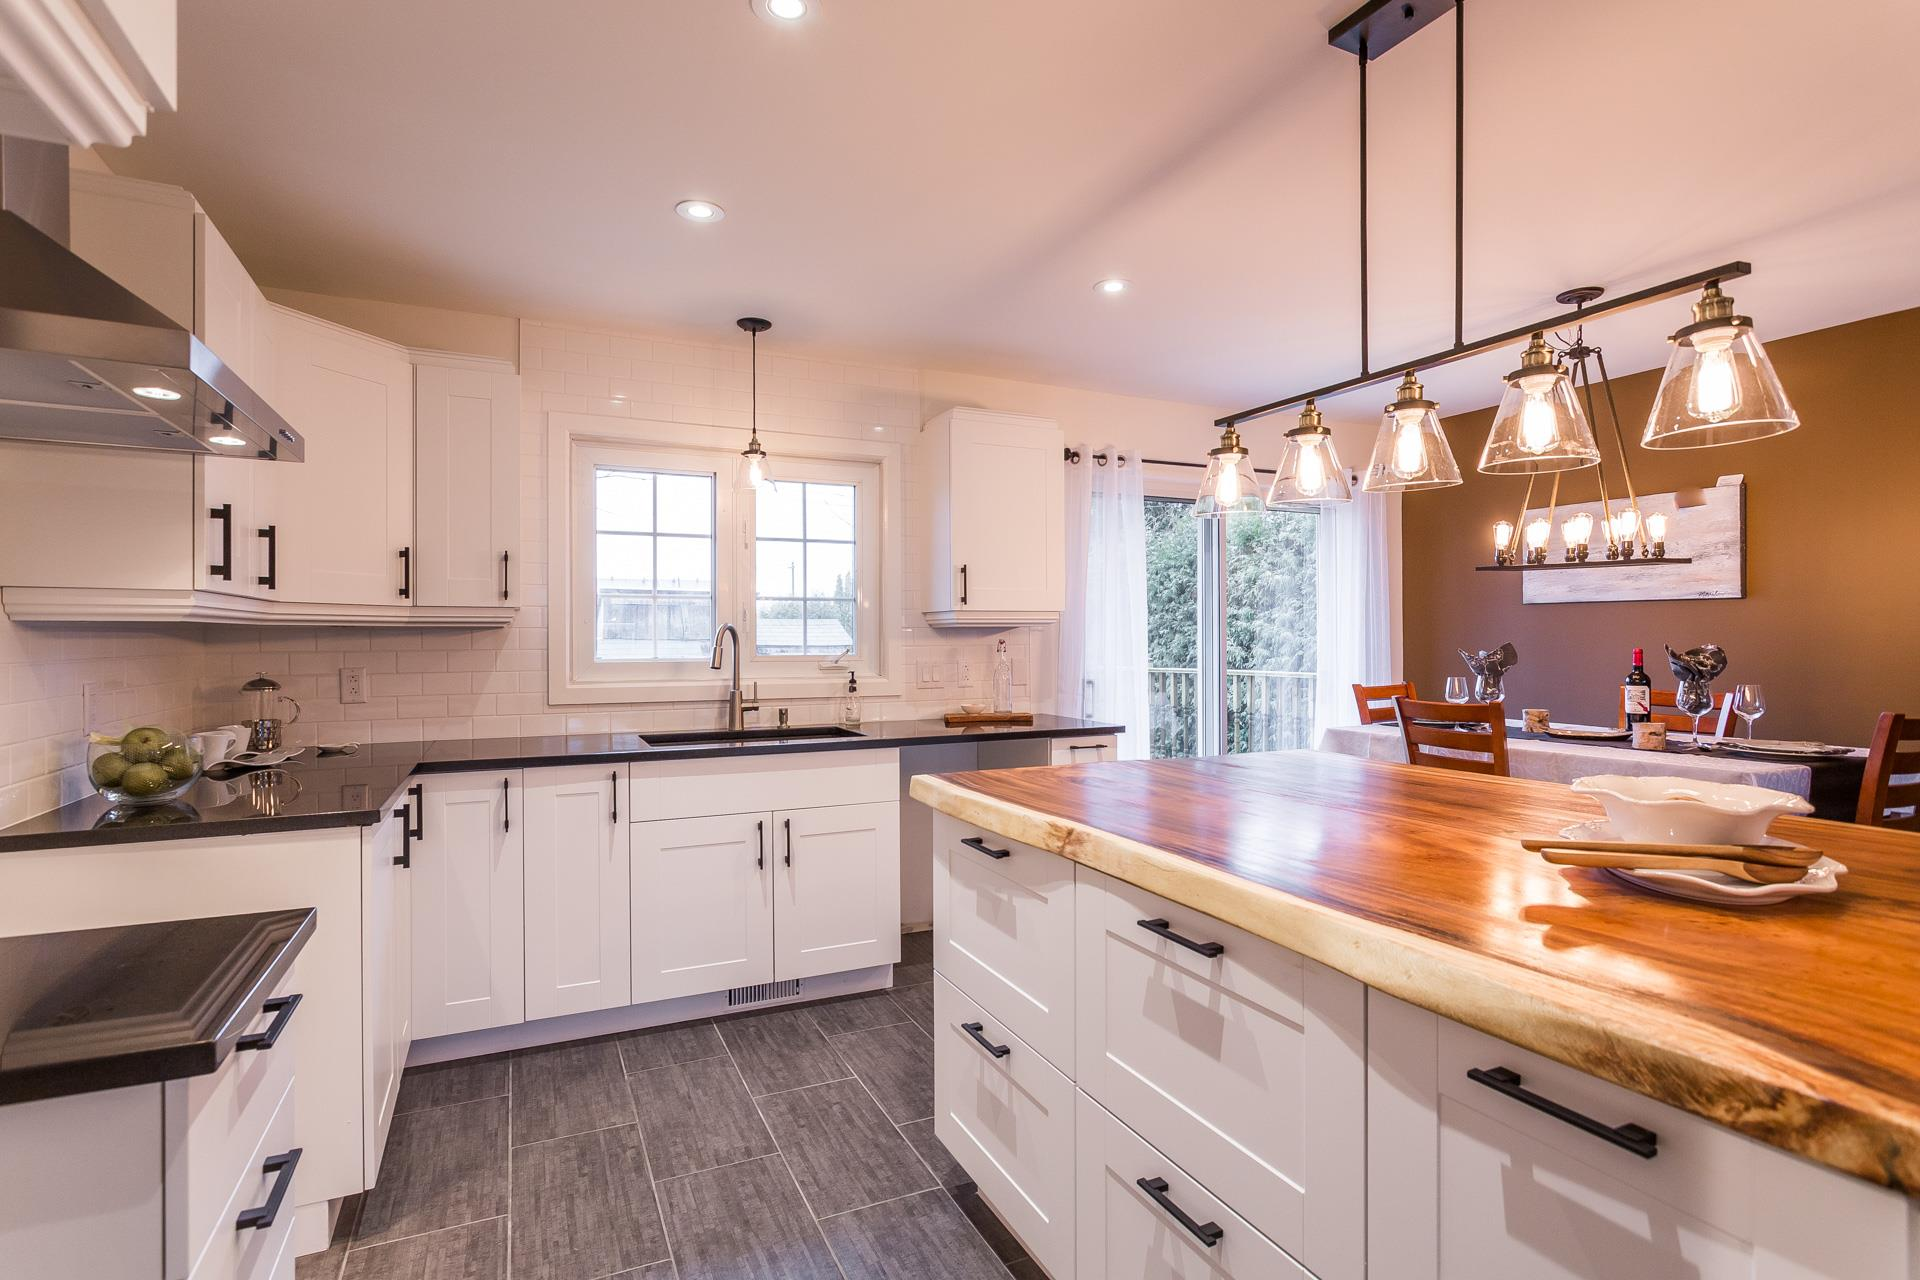 The stunning kitchen with its granit and oiled Acacia-wood countertops in 55 Av. d'Hochelaga, Candiac, Qc J5R 3T9.. Marie Paule Lancup, Realtor.